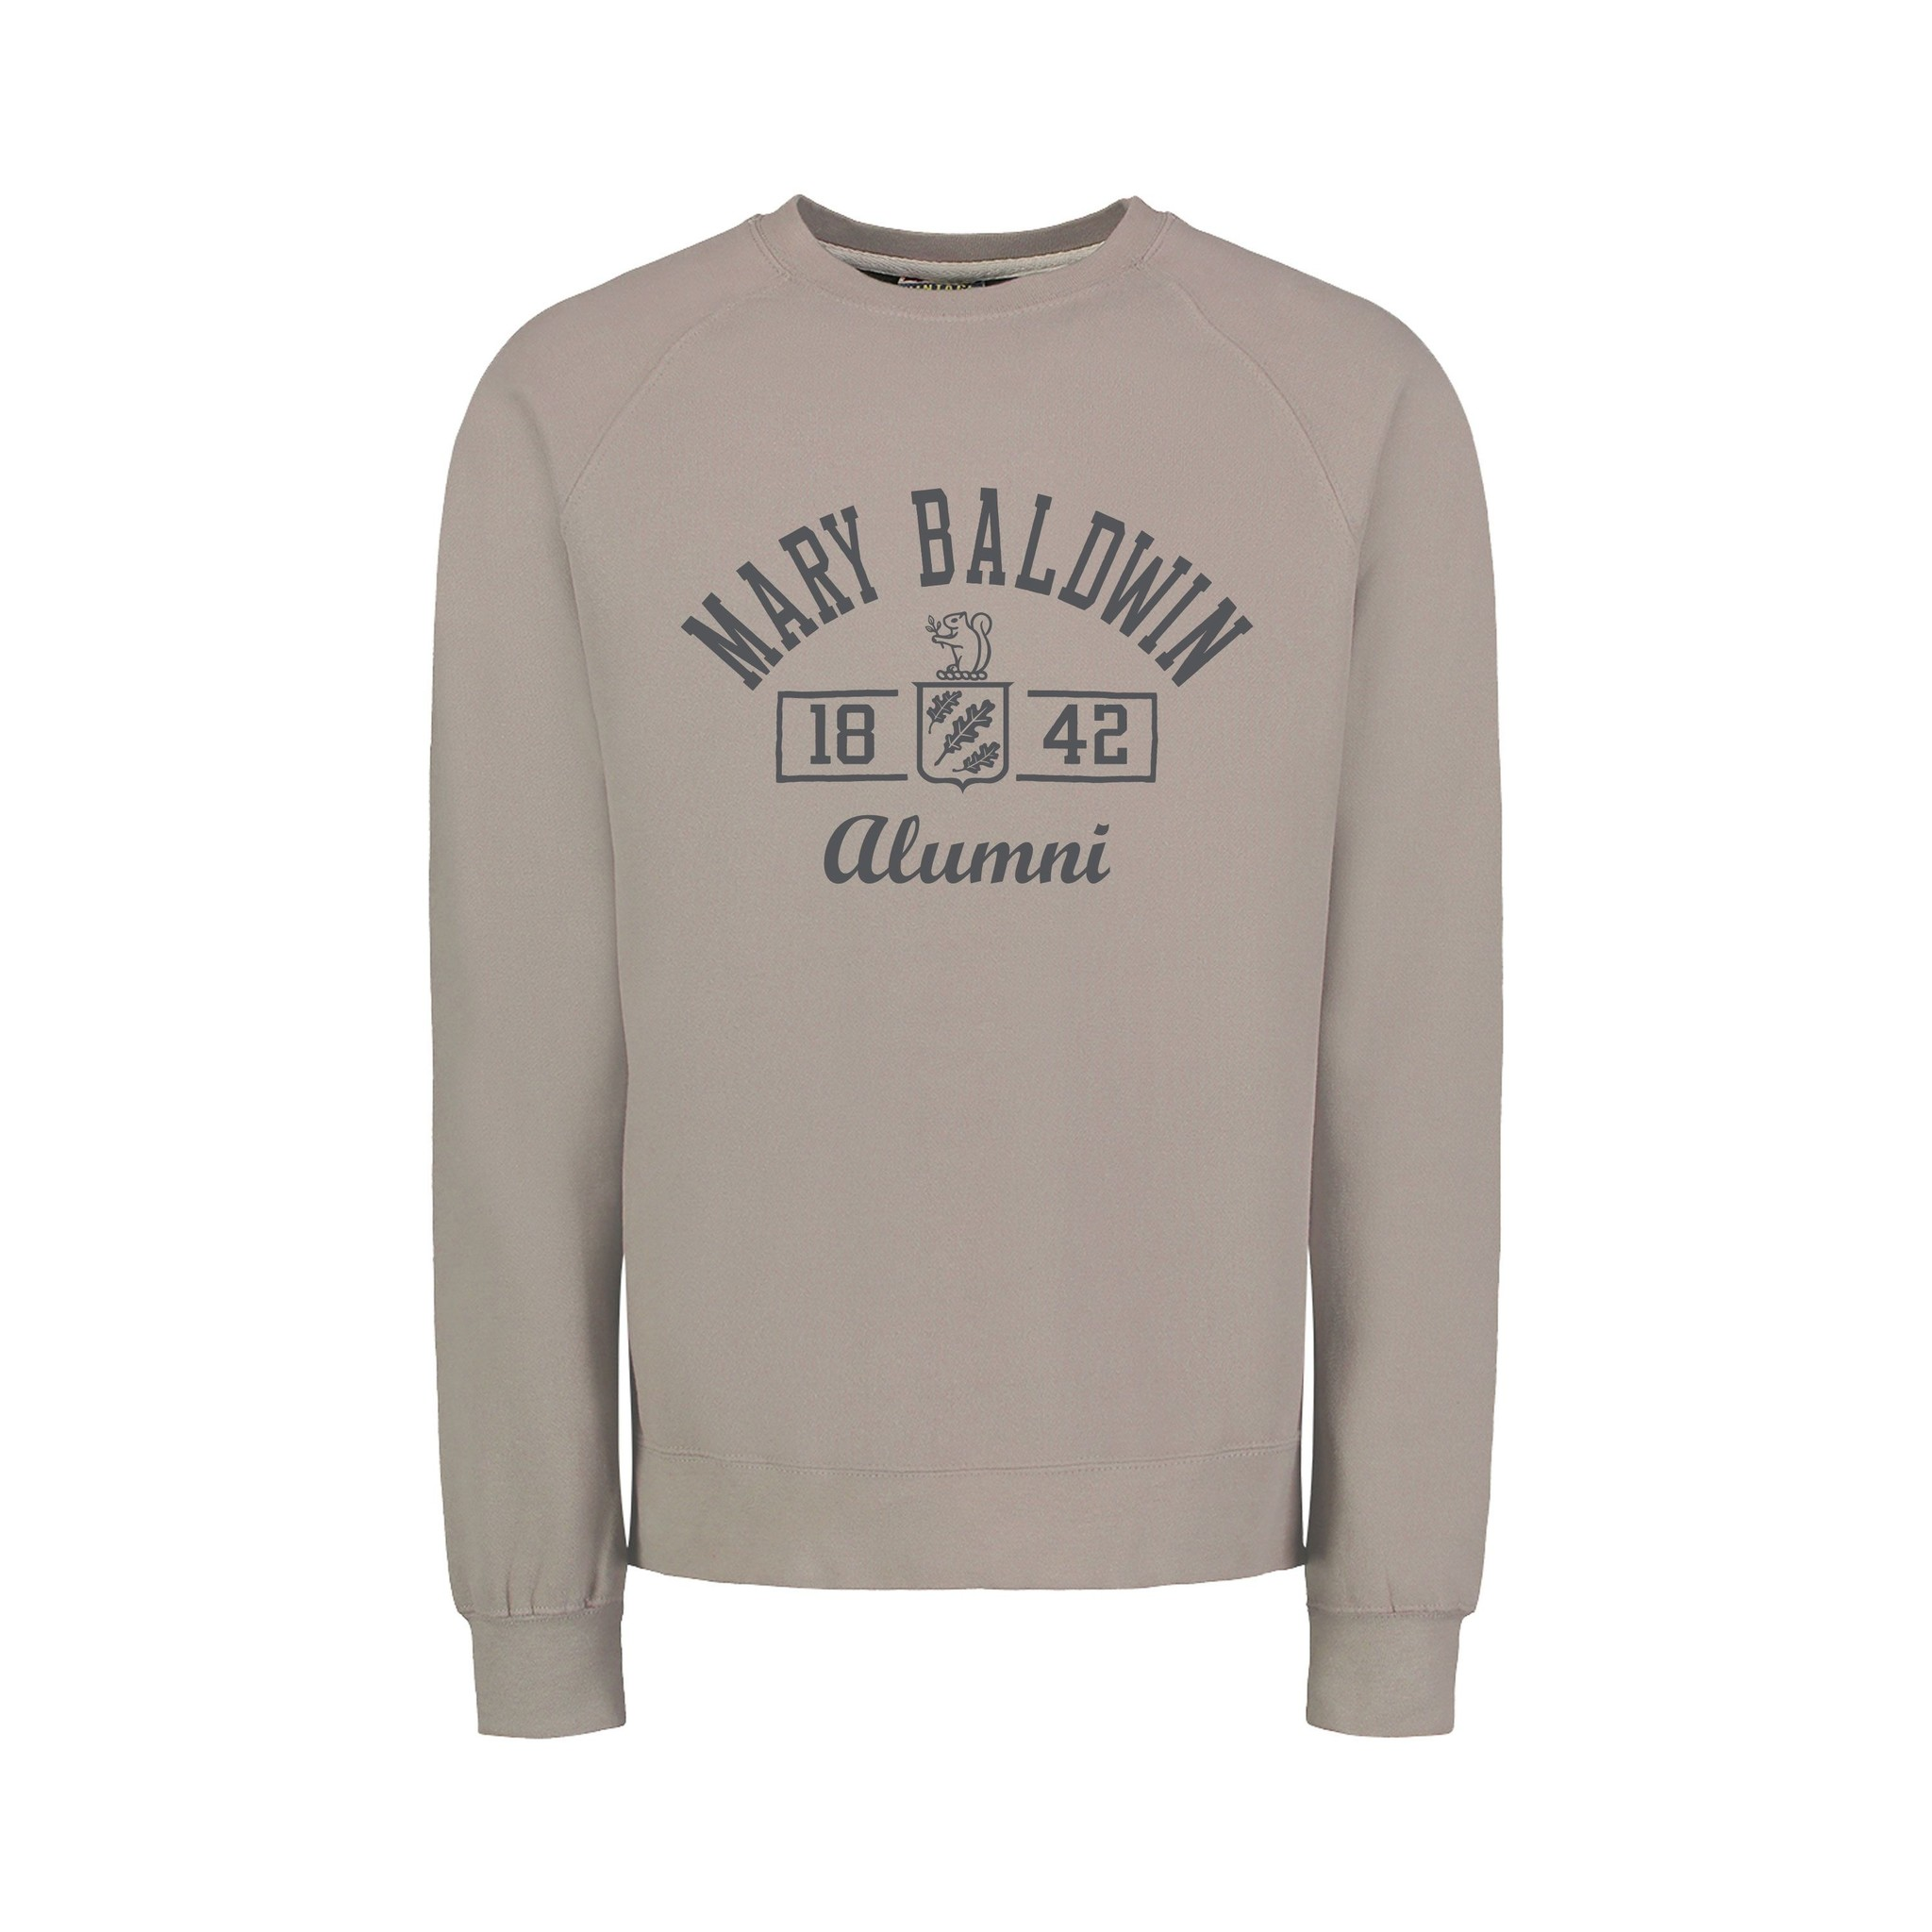 Alumni Sweatshirt 1842 w/Squirrel